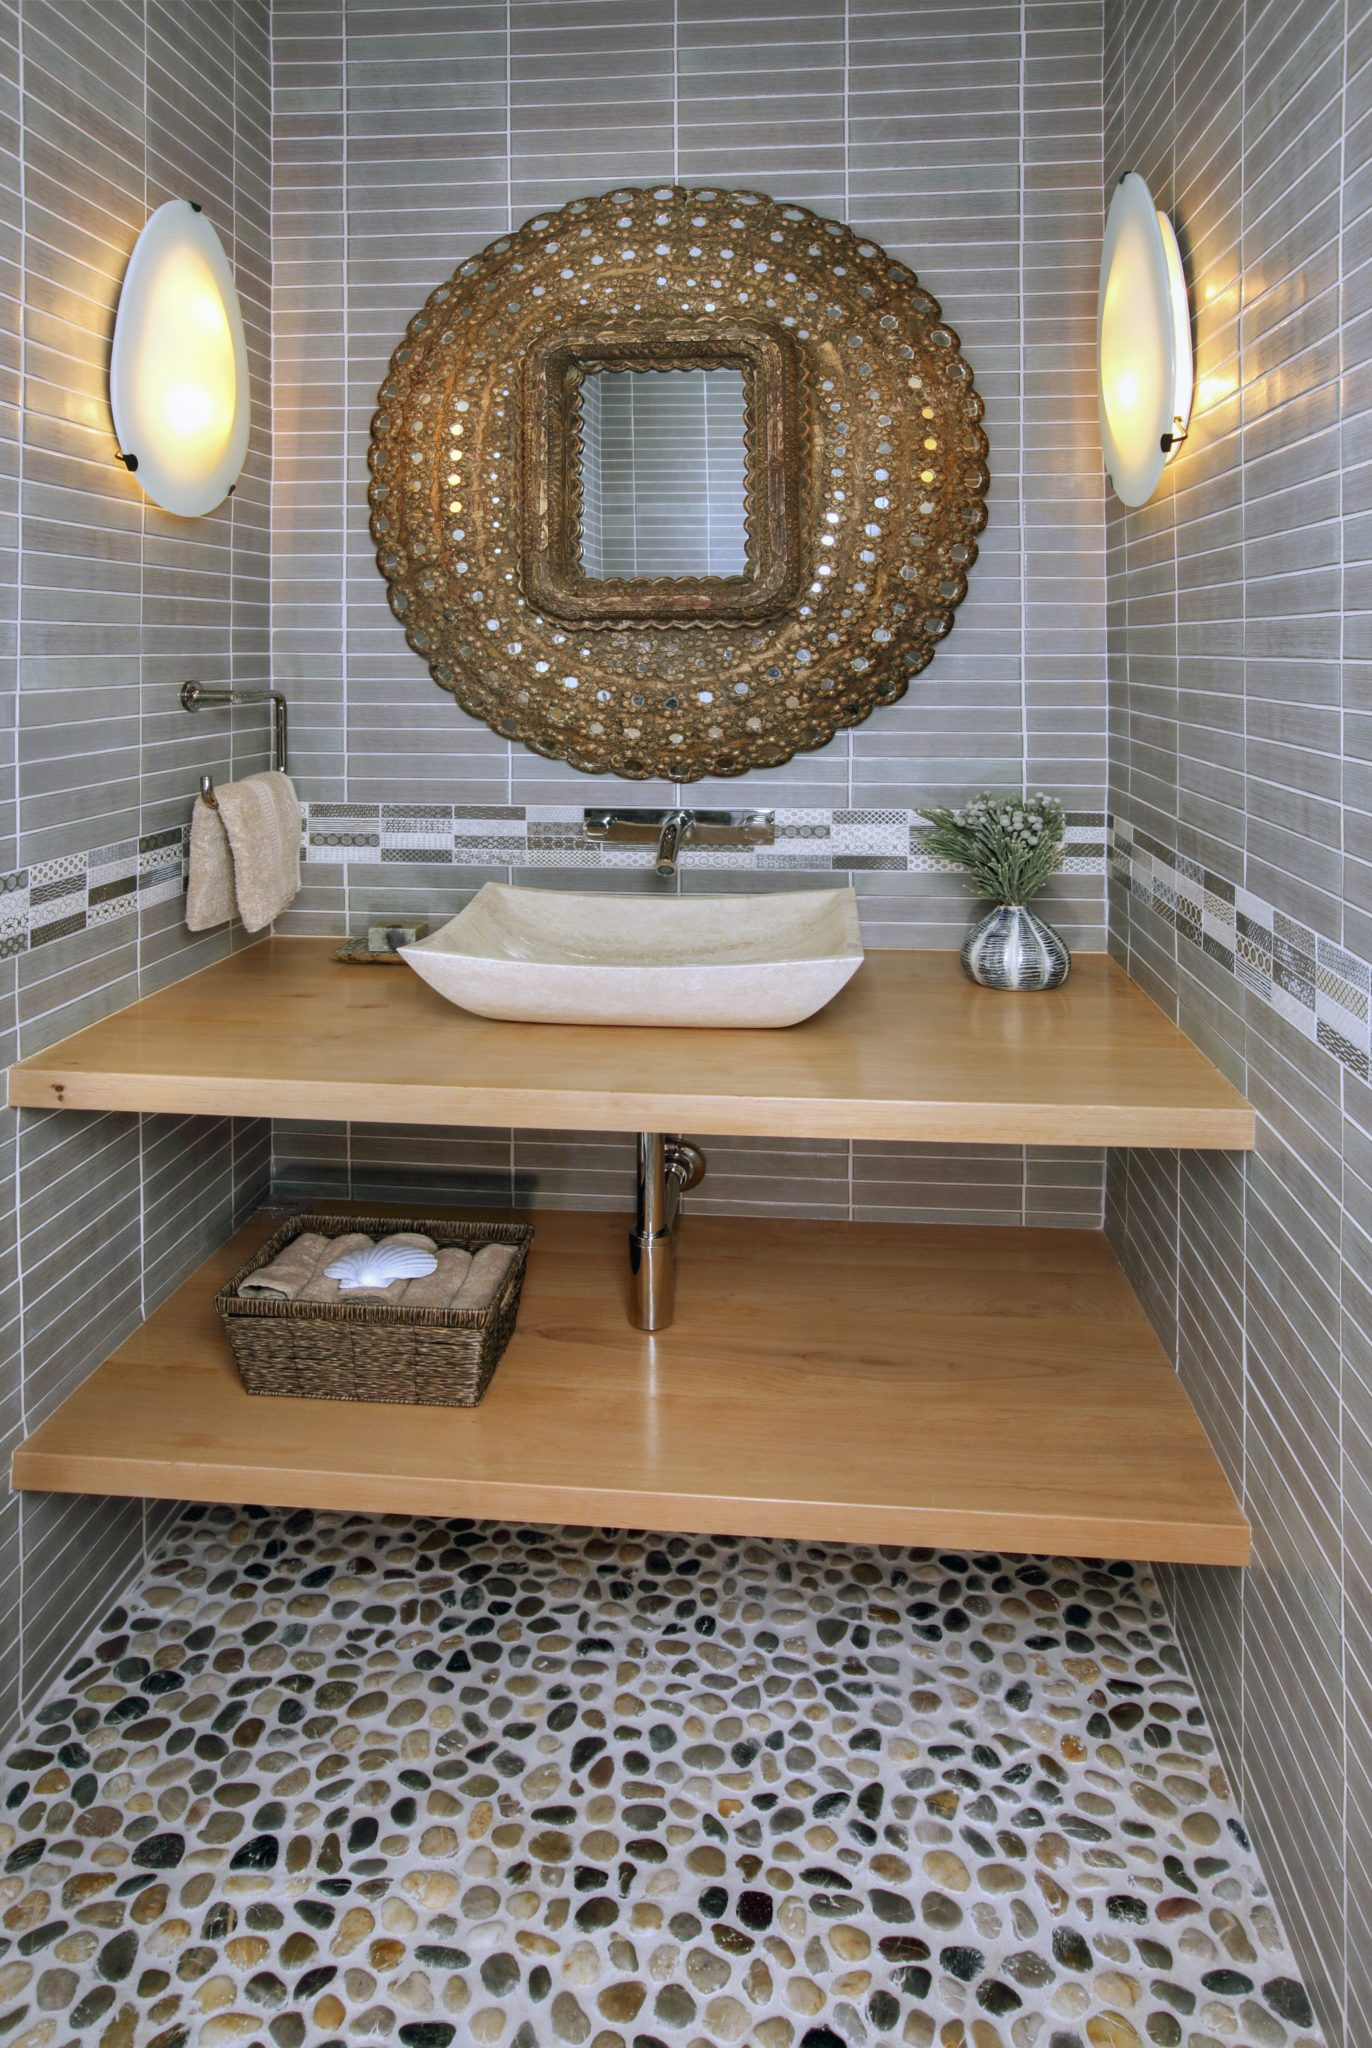 Large multi-toned pebbles set the tone for this powder bathroom. by Sarah Barnard Design